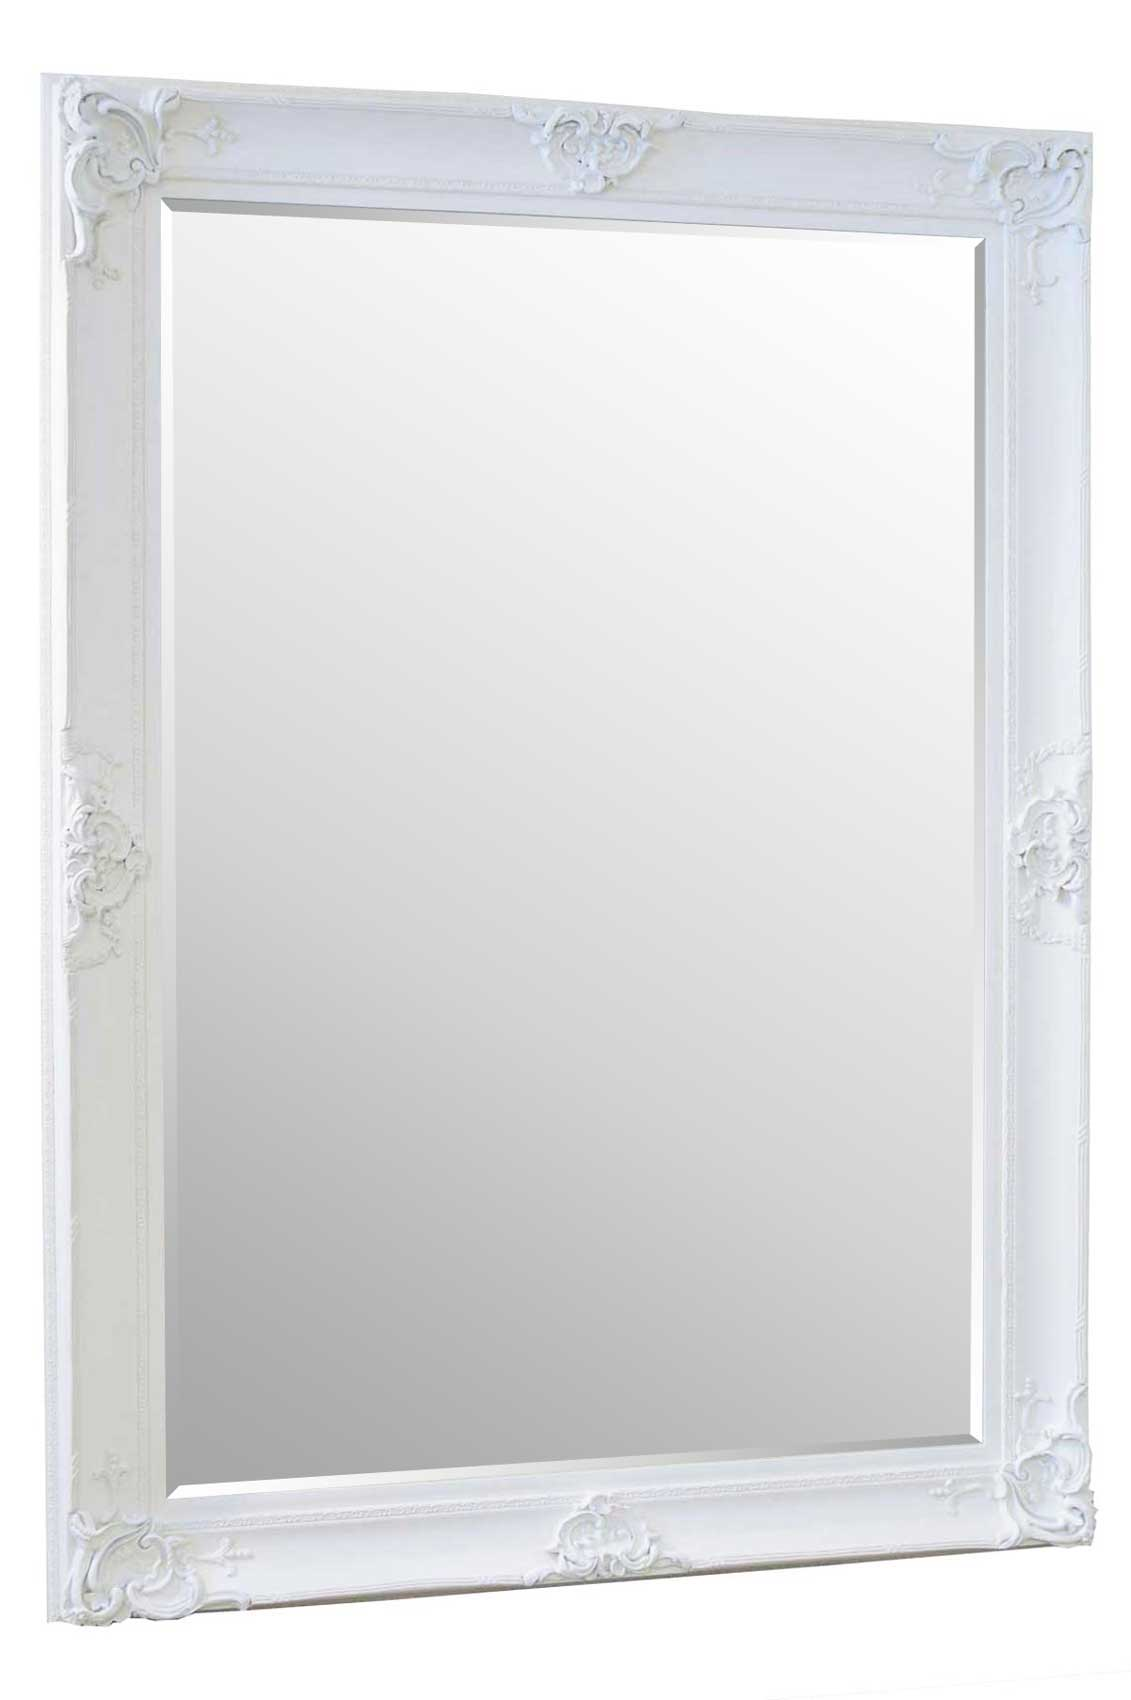 Beautiful Large White Decorative Ornate Wall Mirror 7ft X